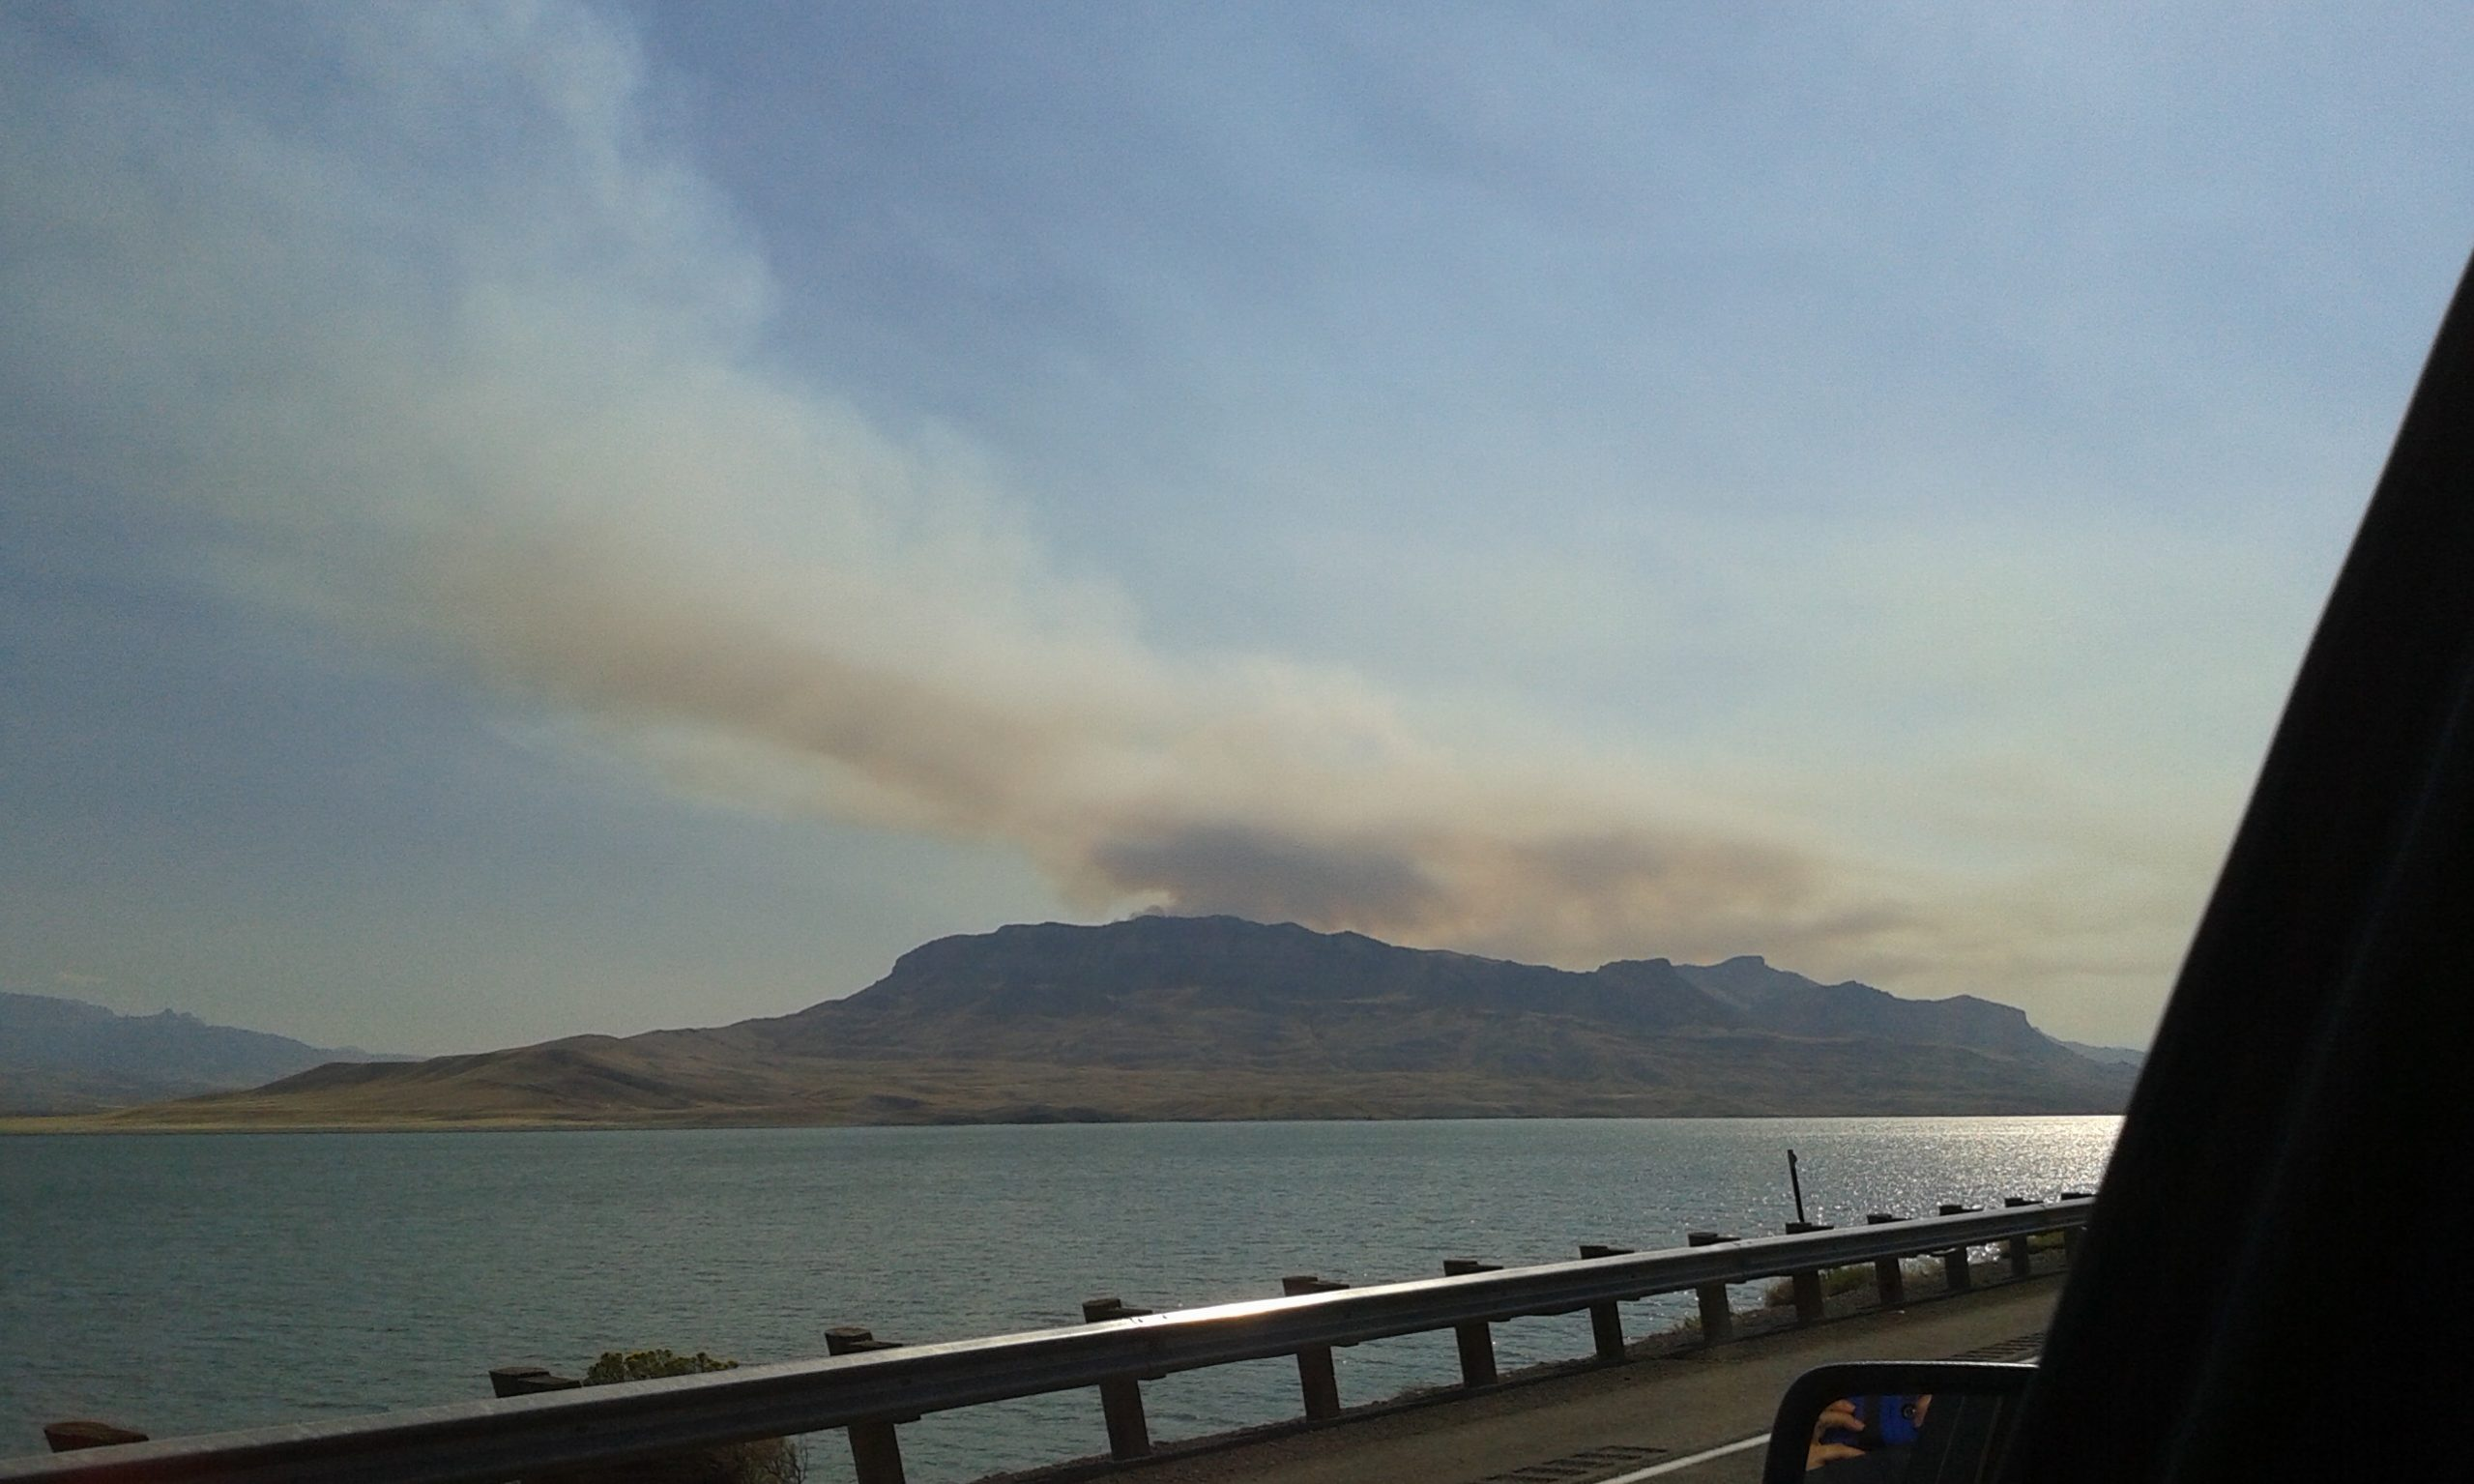 Smoke from the Whit Fire rises over the mountains near the Buffalo Bill Reservoir near Cody, Wyo., as a wildland fire crew from Pennsylvania arrives for their assignment. (Photo by Kimberly Finnigan)